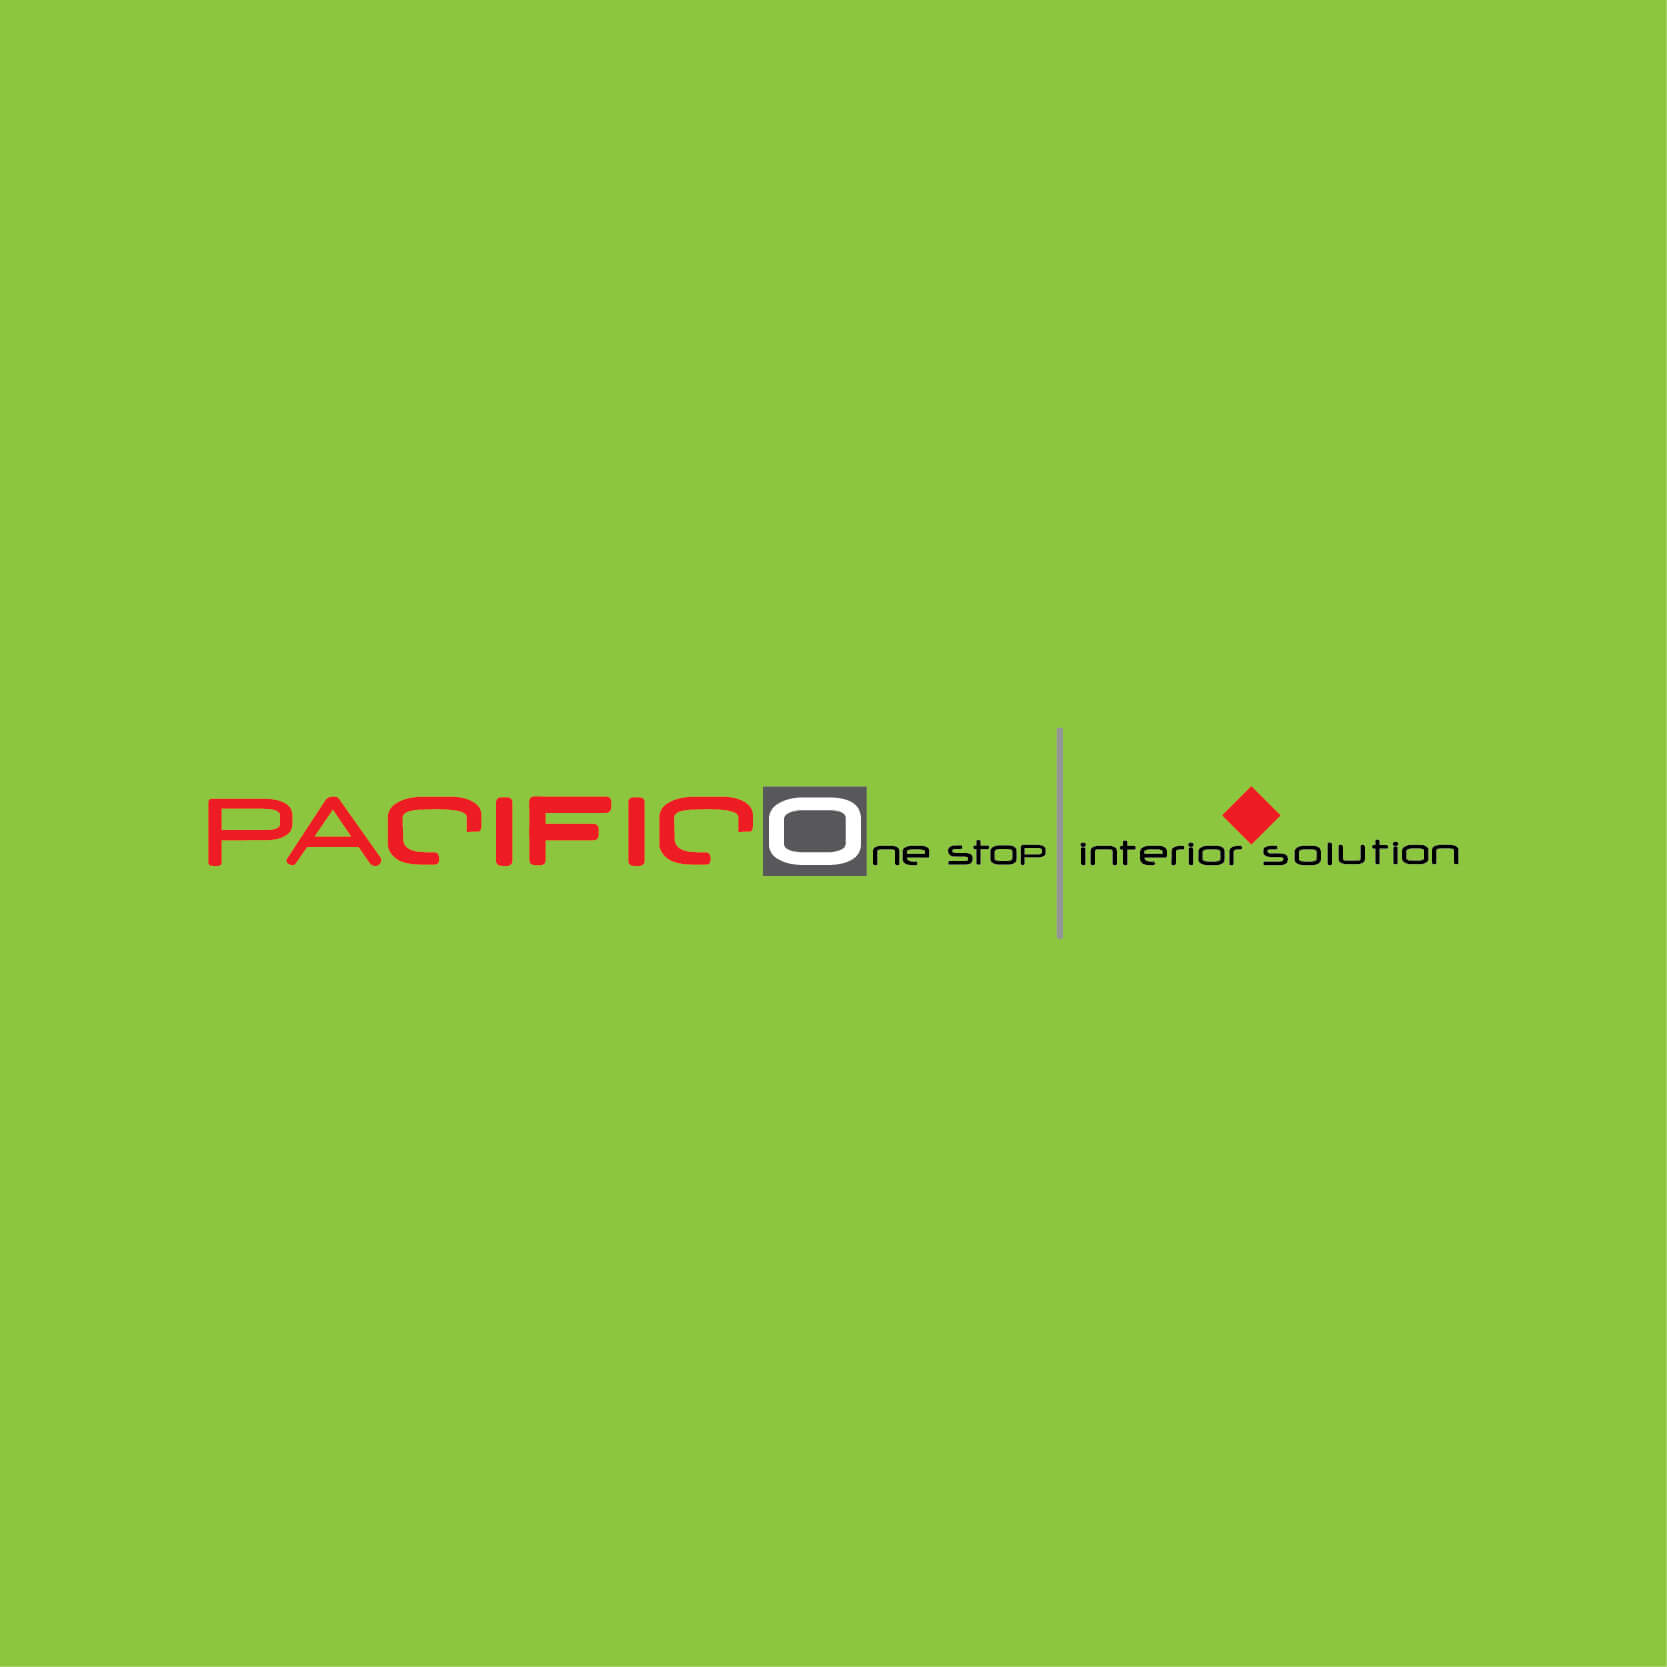 DTC-Clients-Served-Logo-Pacific One Stop